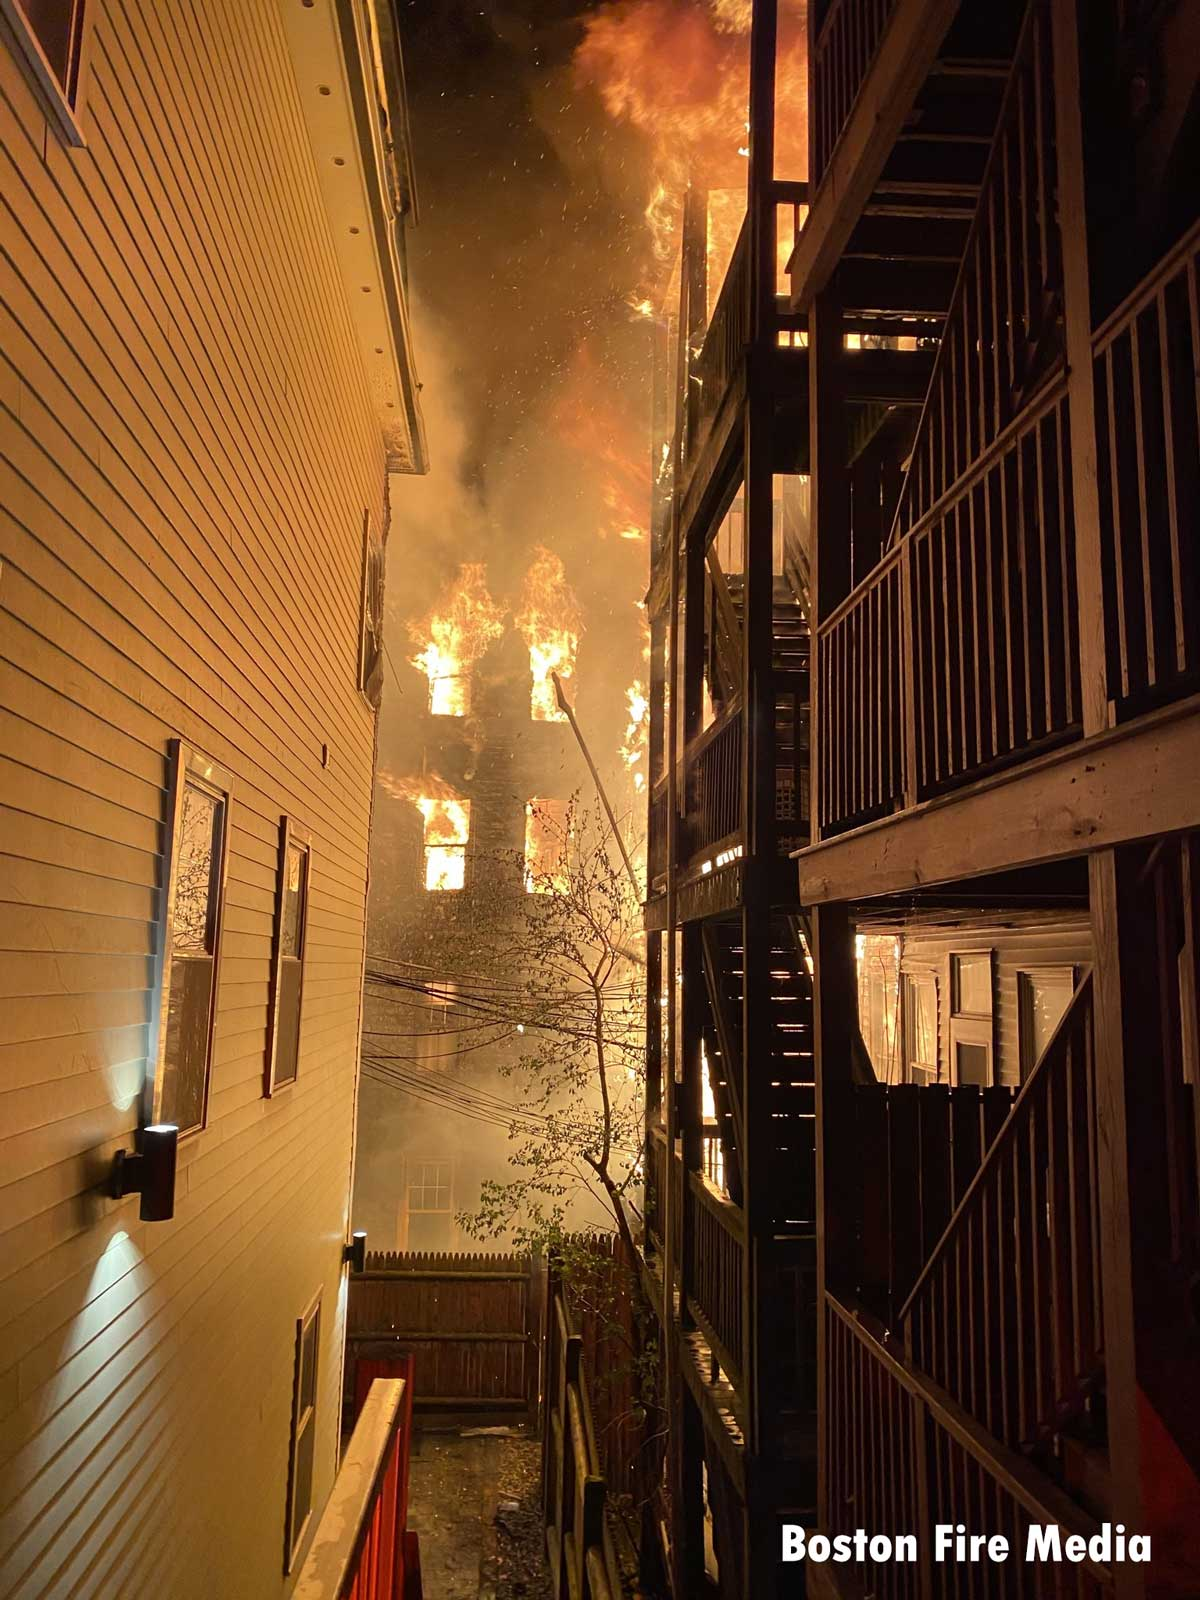 A view of the flames between buildings